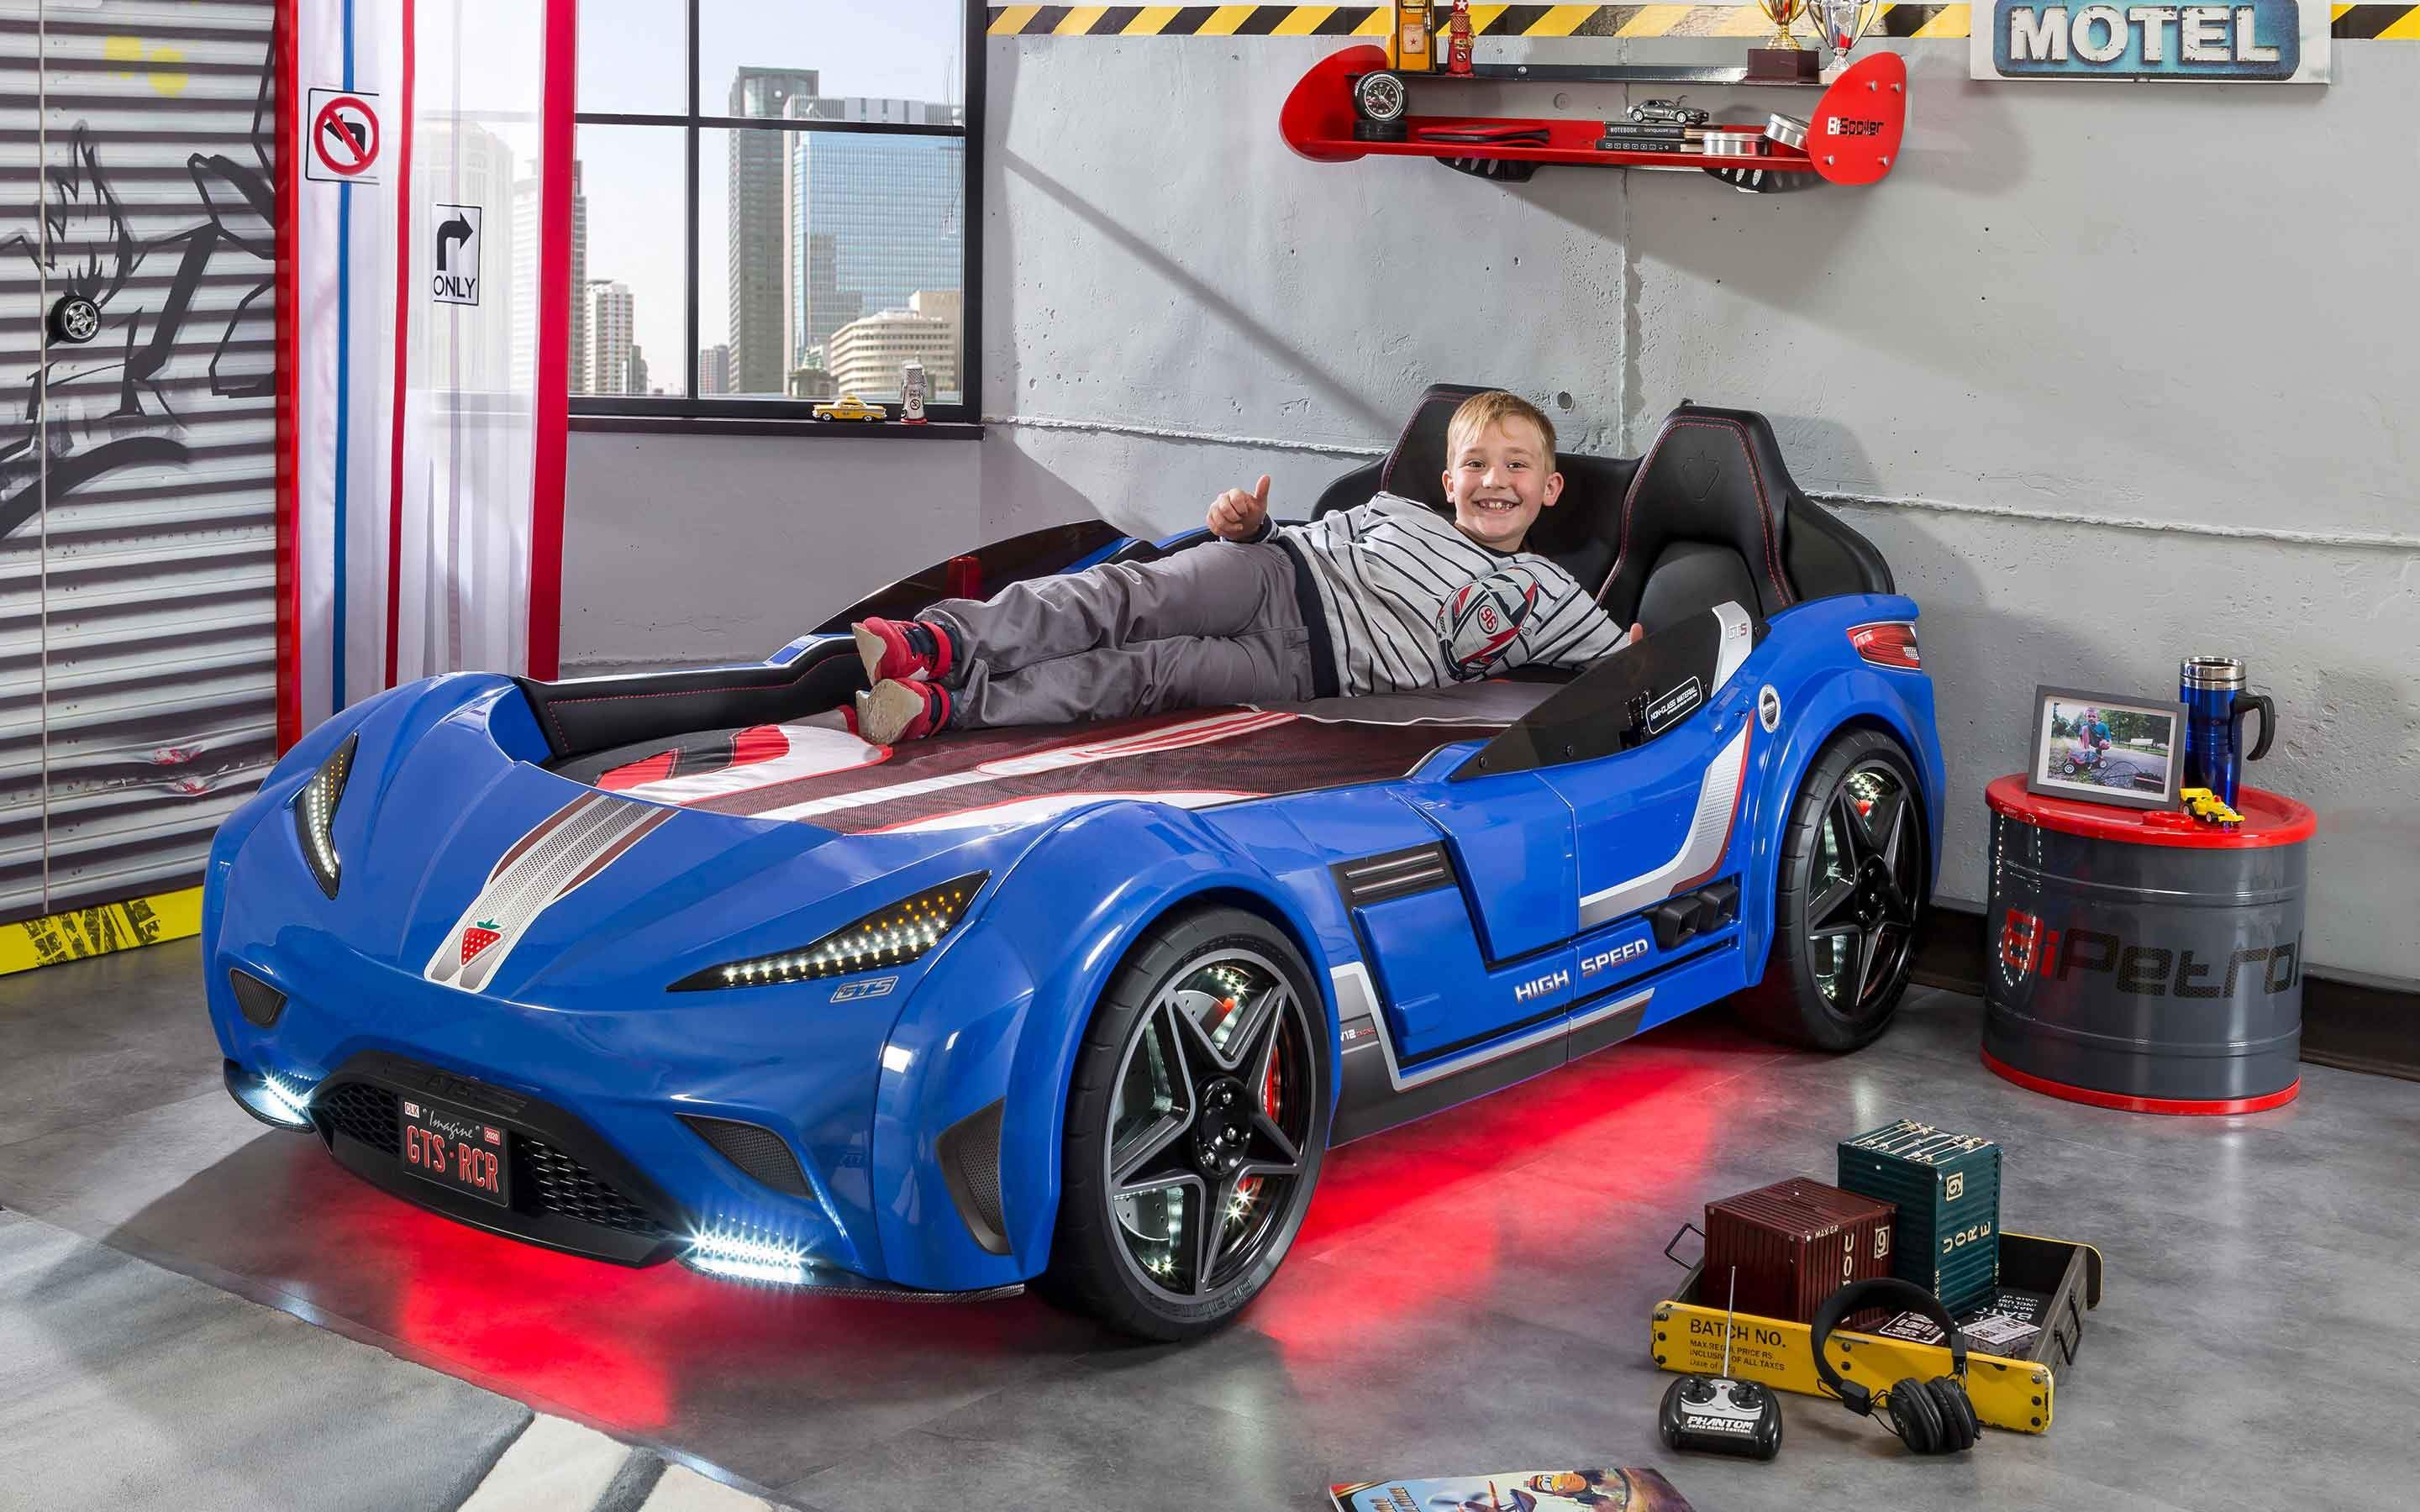 Gts Collection With Twin Race Car Bed Gas Pump Dresser And More Cilek Kids Room Boys Boysroom Racecar Racecarbeds Twinra Race Car Bed Car Bed Cars Room